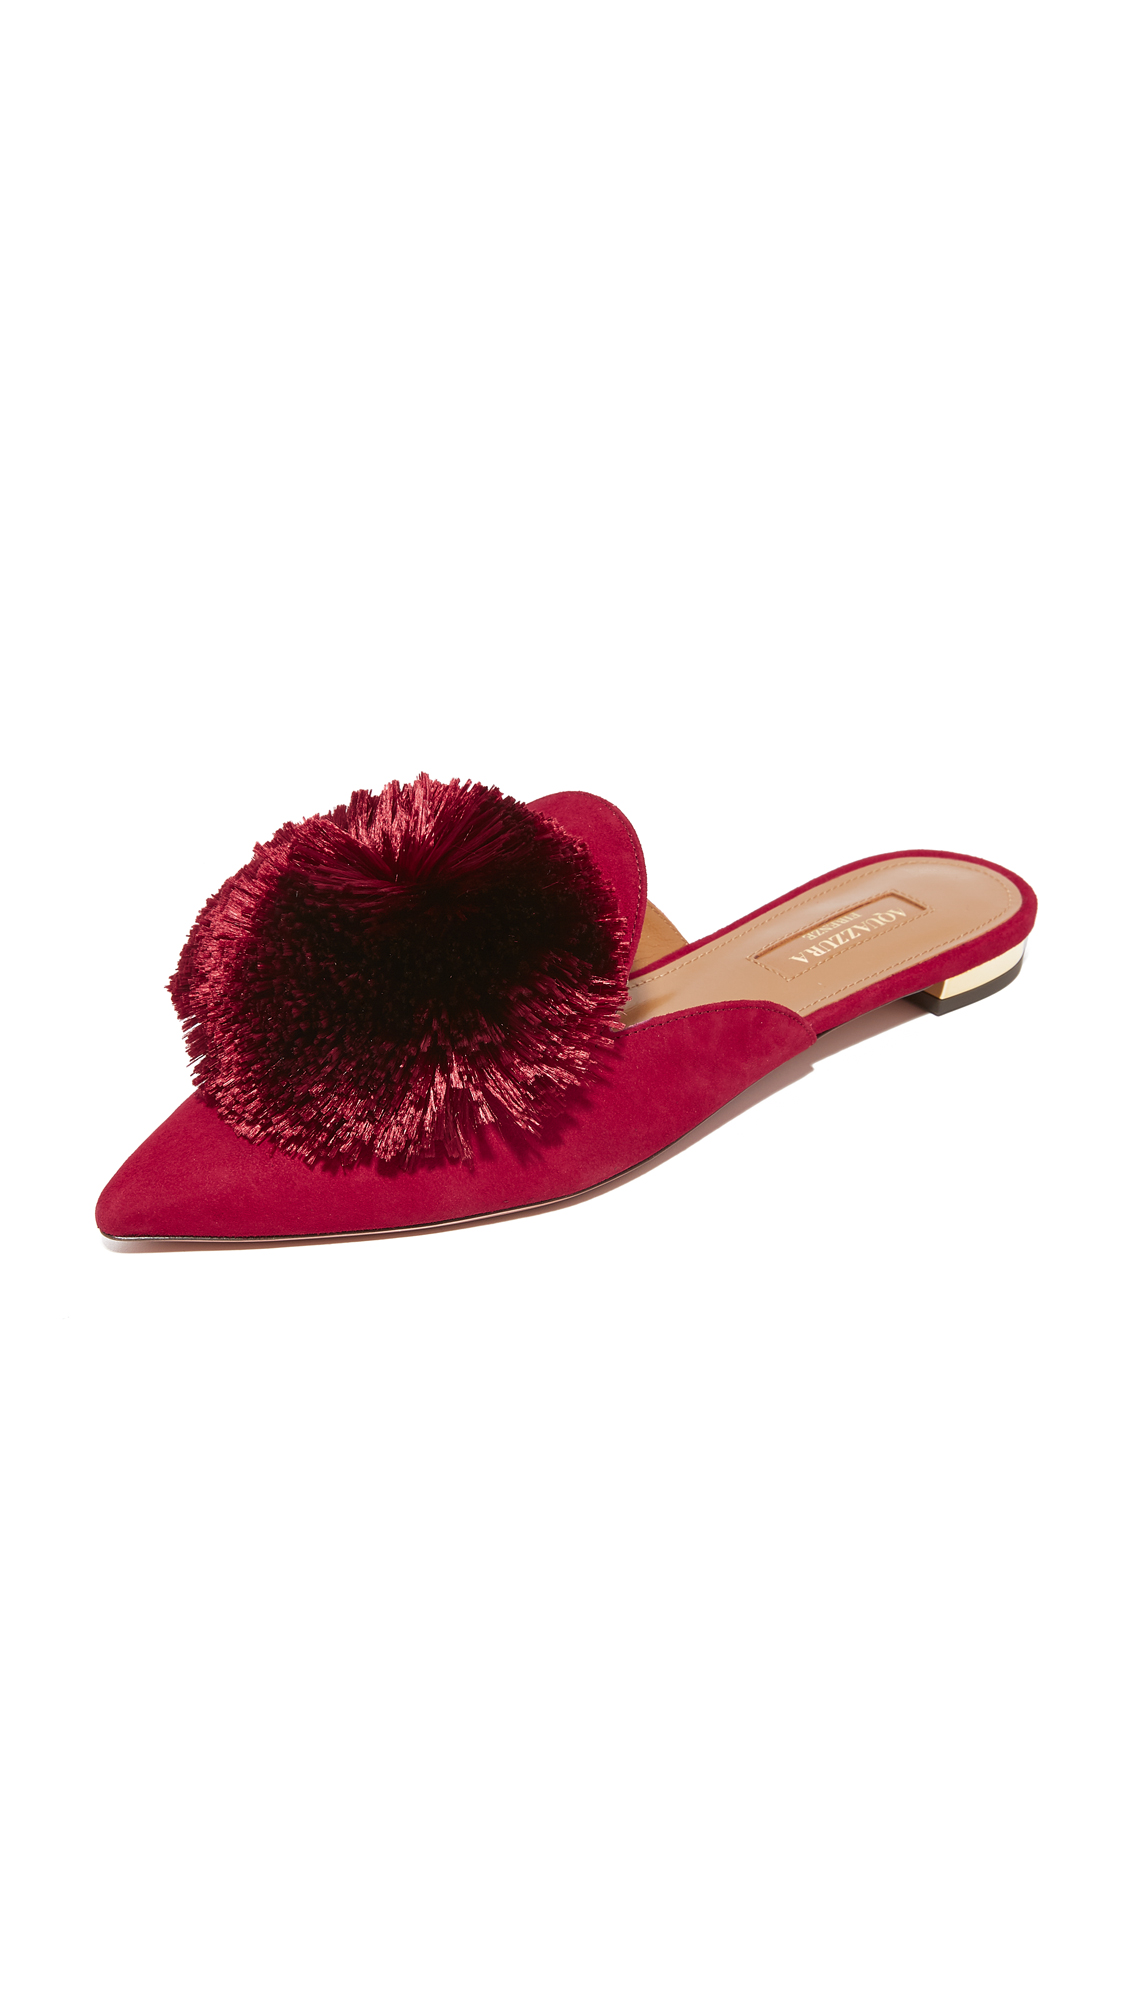 Aquazzura Powder Puff Flats - Spiced Red